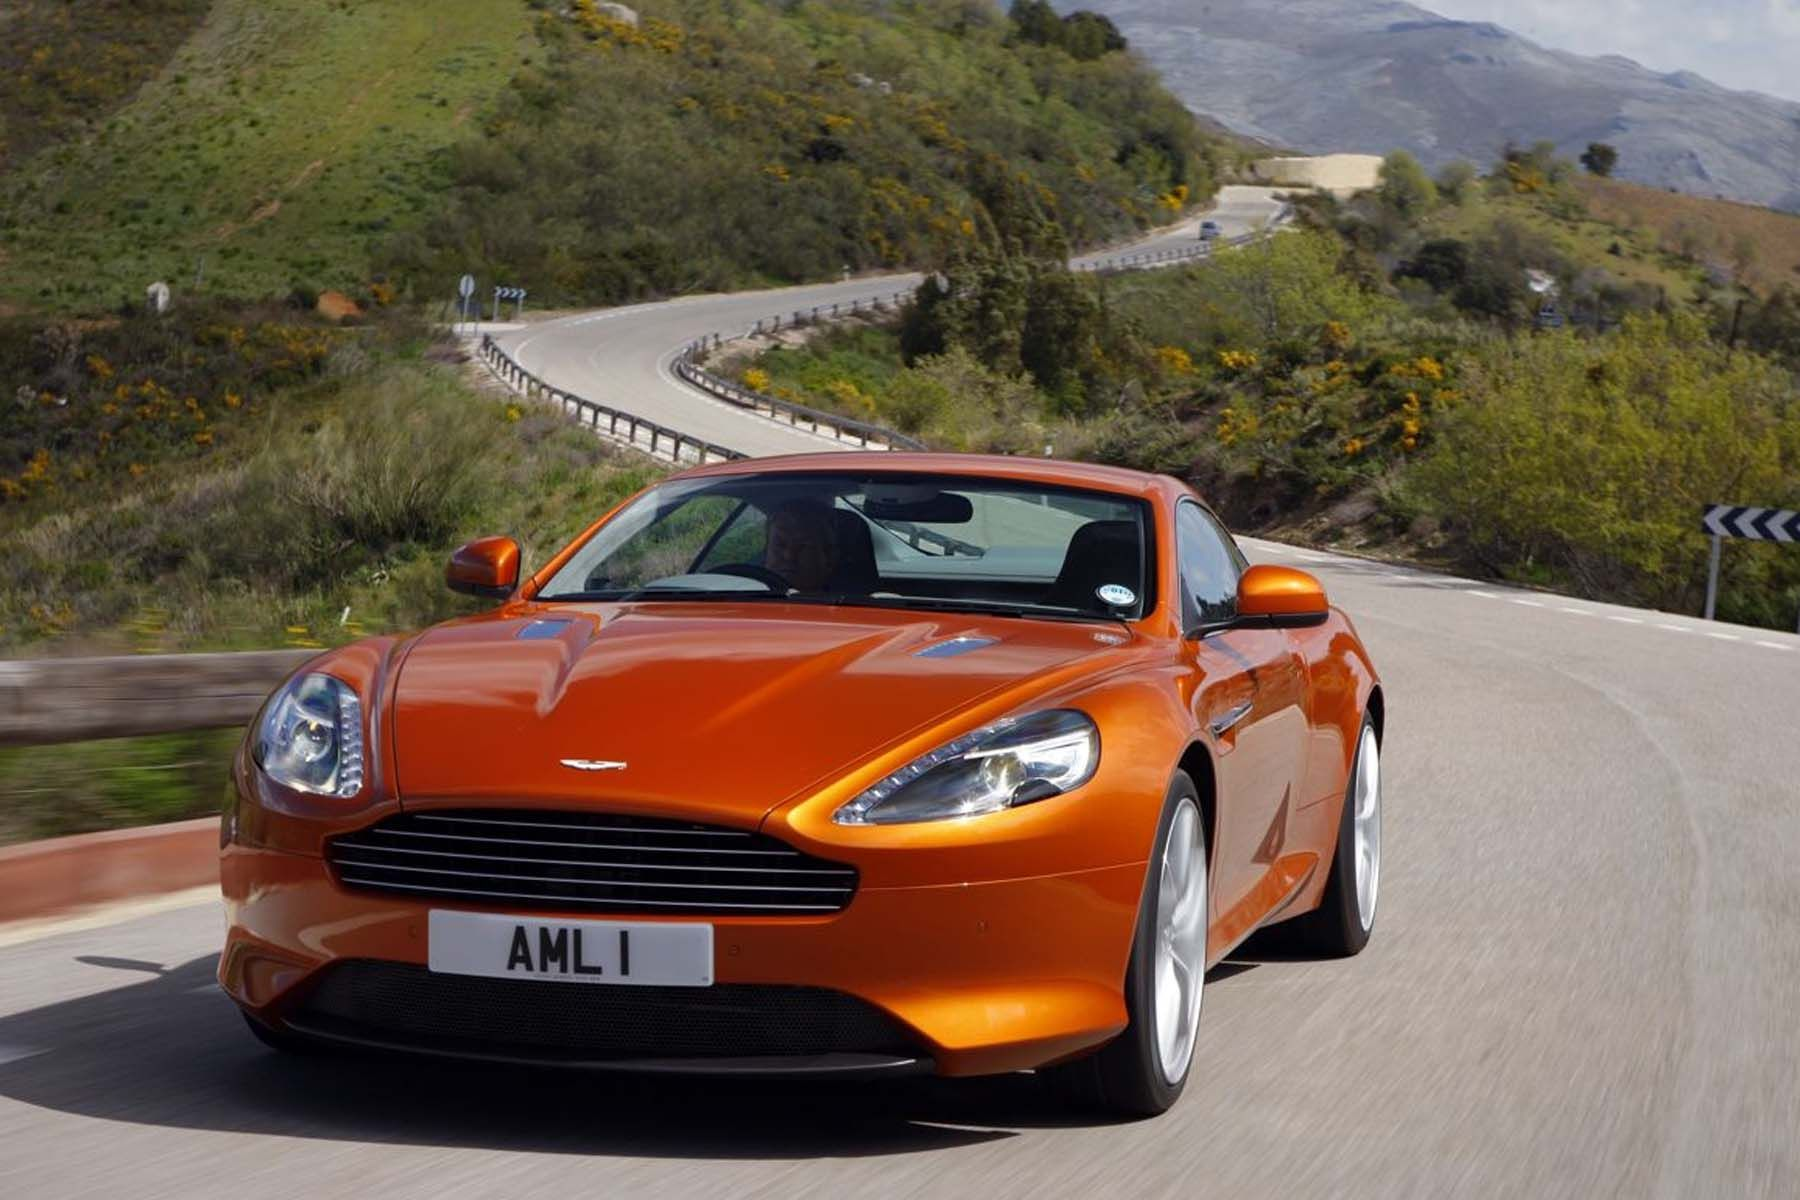 The Aston Martin Virage is simply breathtakingly beautiful This car